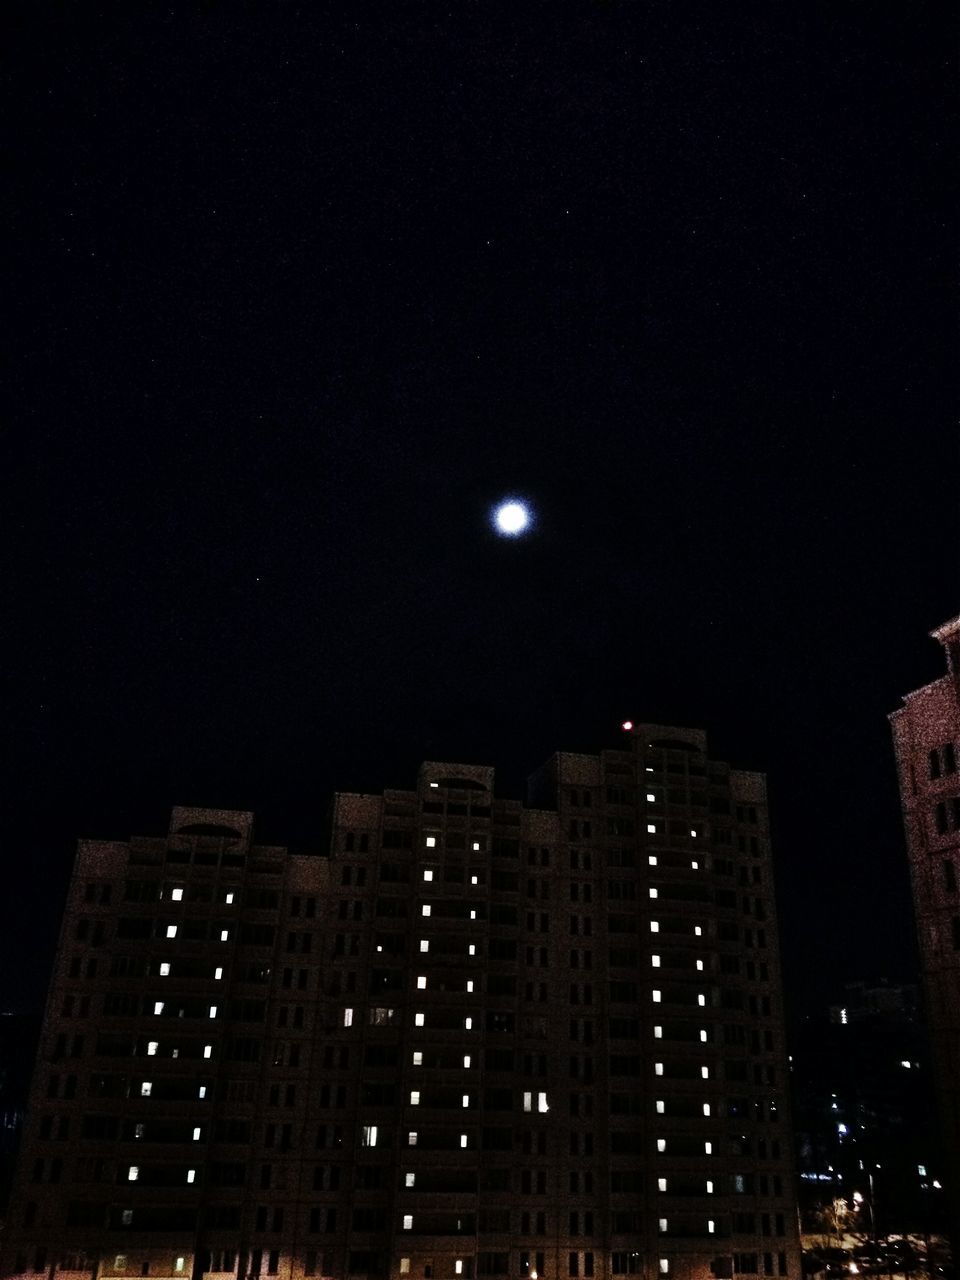 night, architecture, building exterior, illuminated, moon, built structure, city, skyscraper, modern, no people, low angle view, outdoors, sky, cityscape